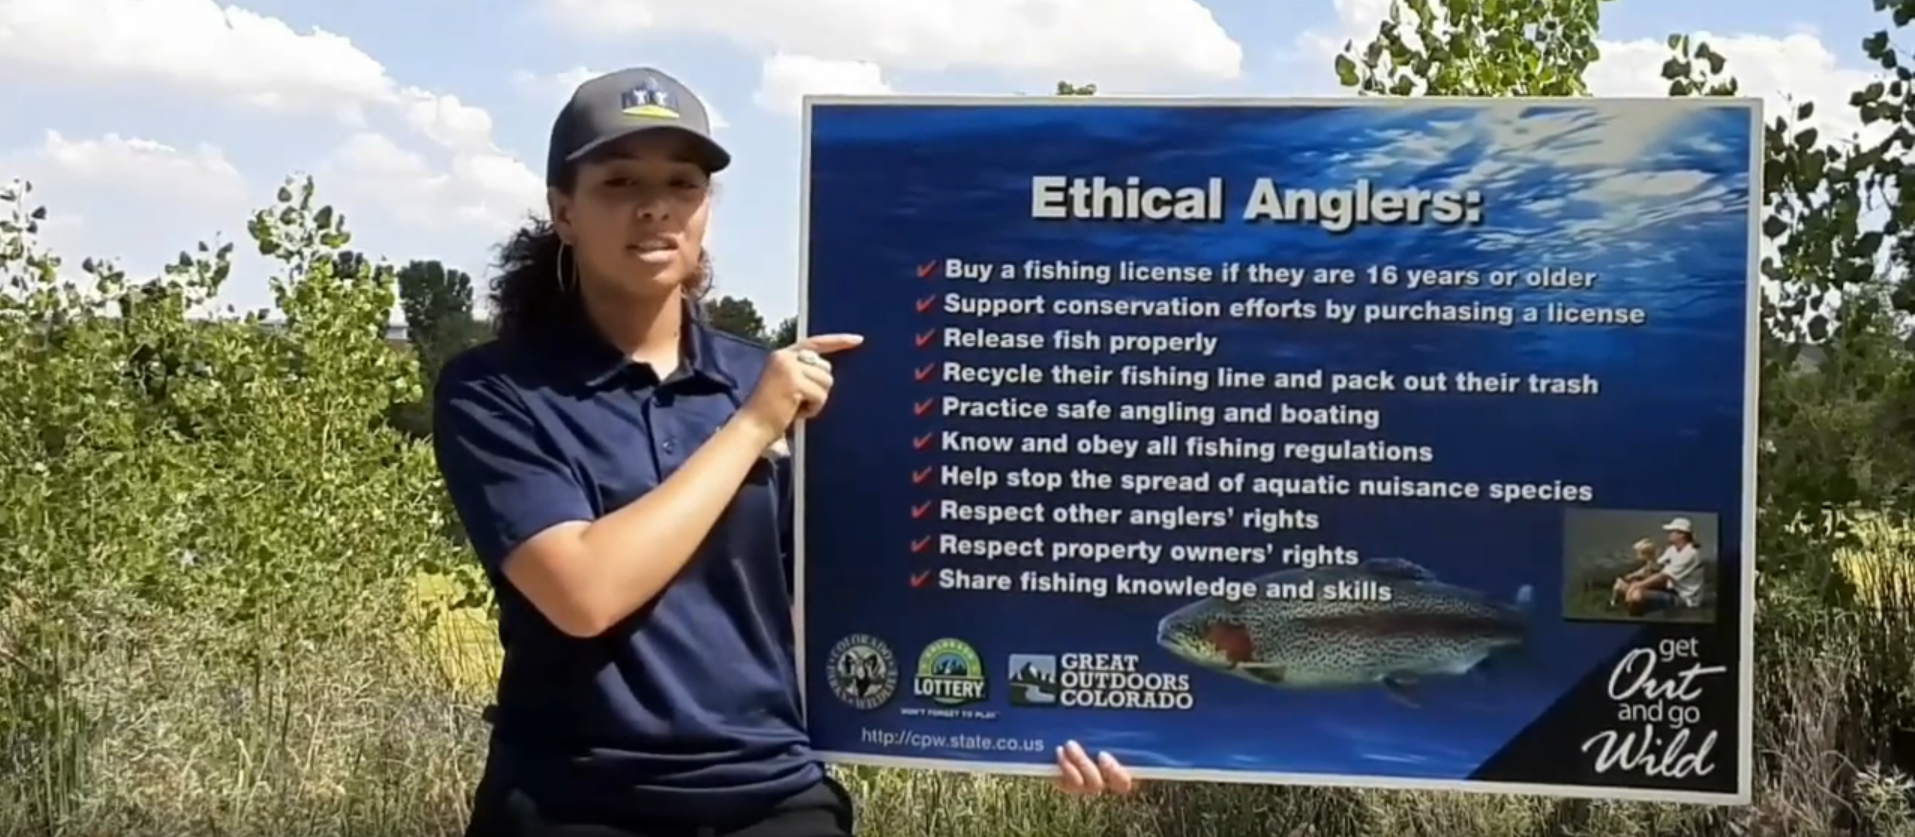 instructor teaching fishing class at a forested area